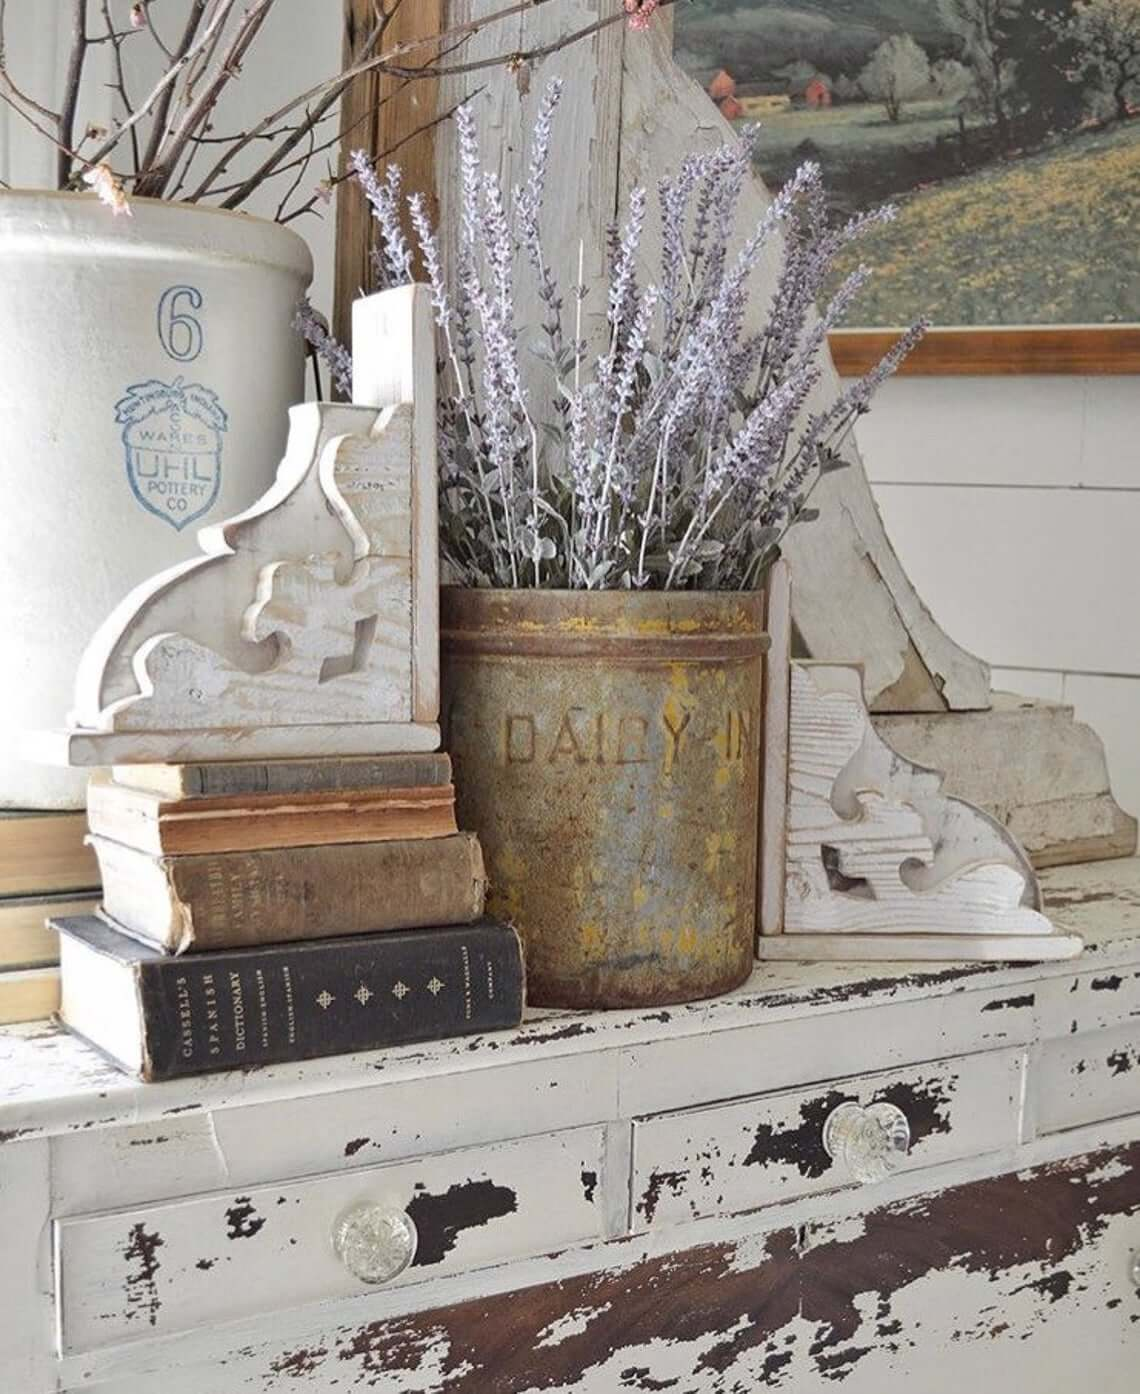 Distressed and Decorative Shabby Chic Farmhouse Decor